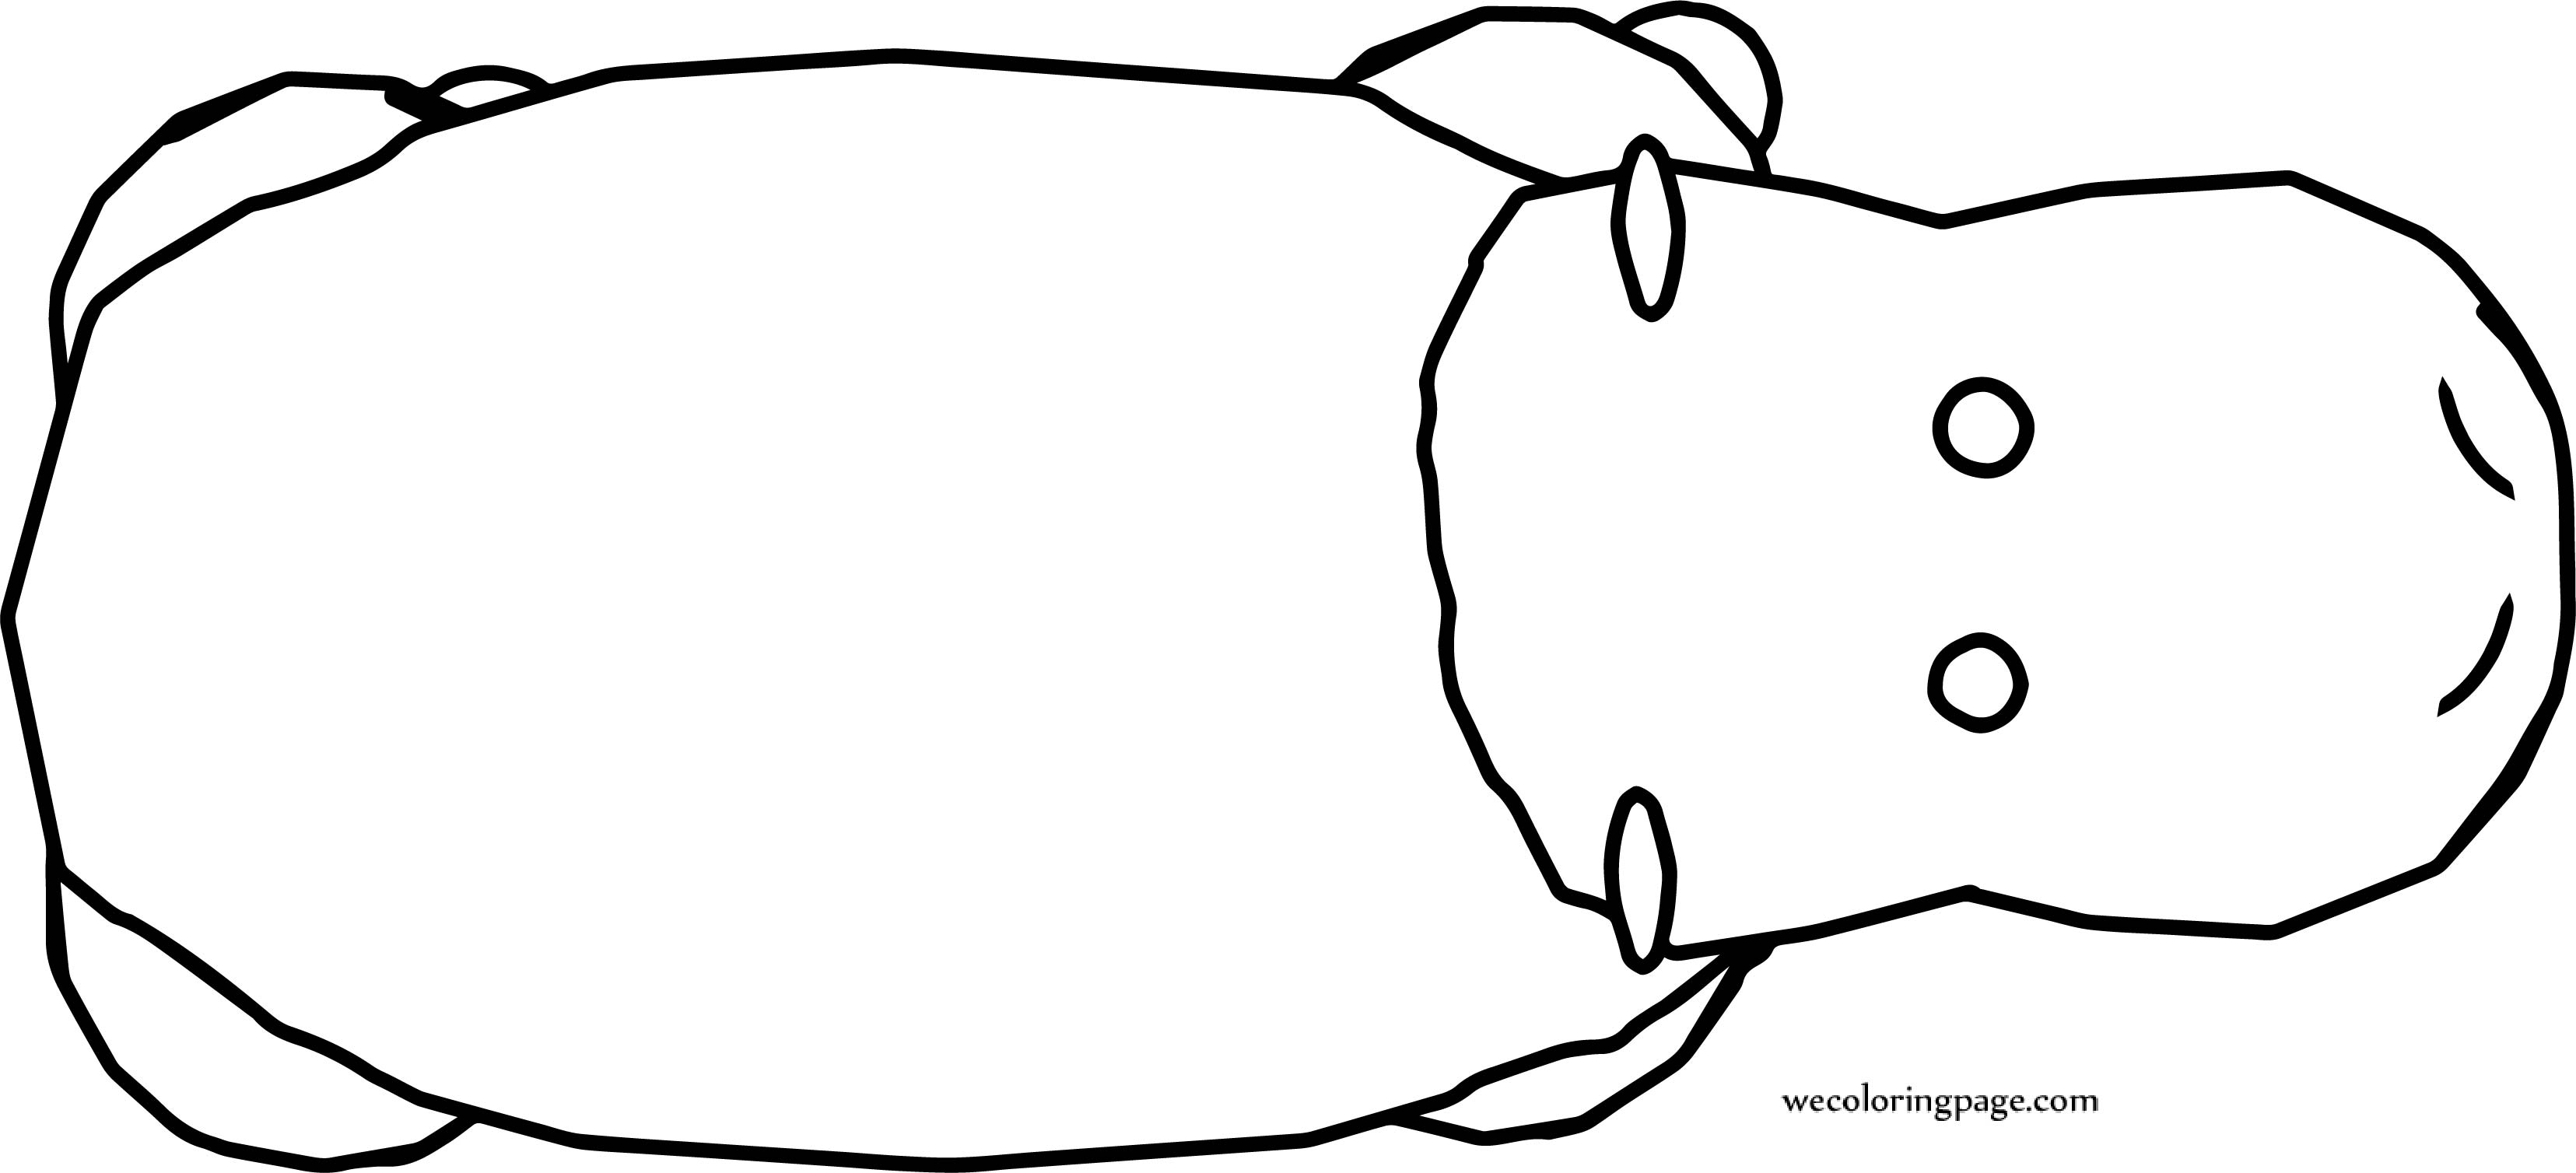 Rhinoceros Top View Coloring Page